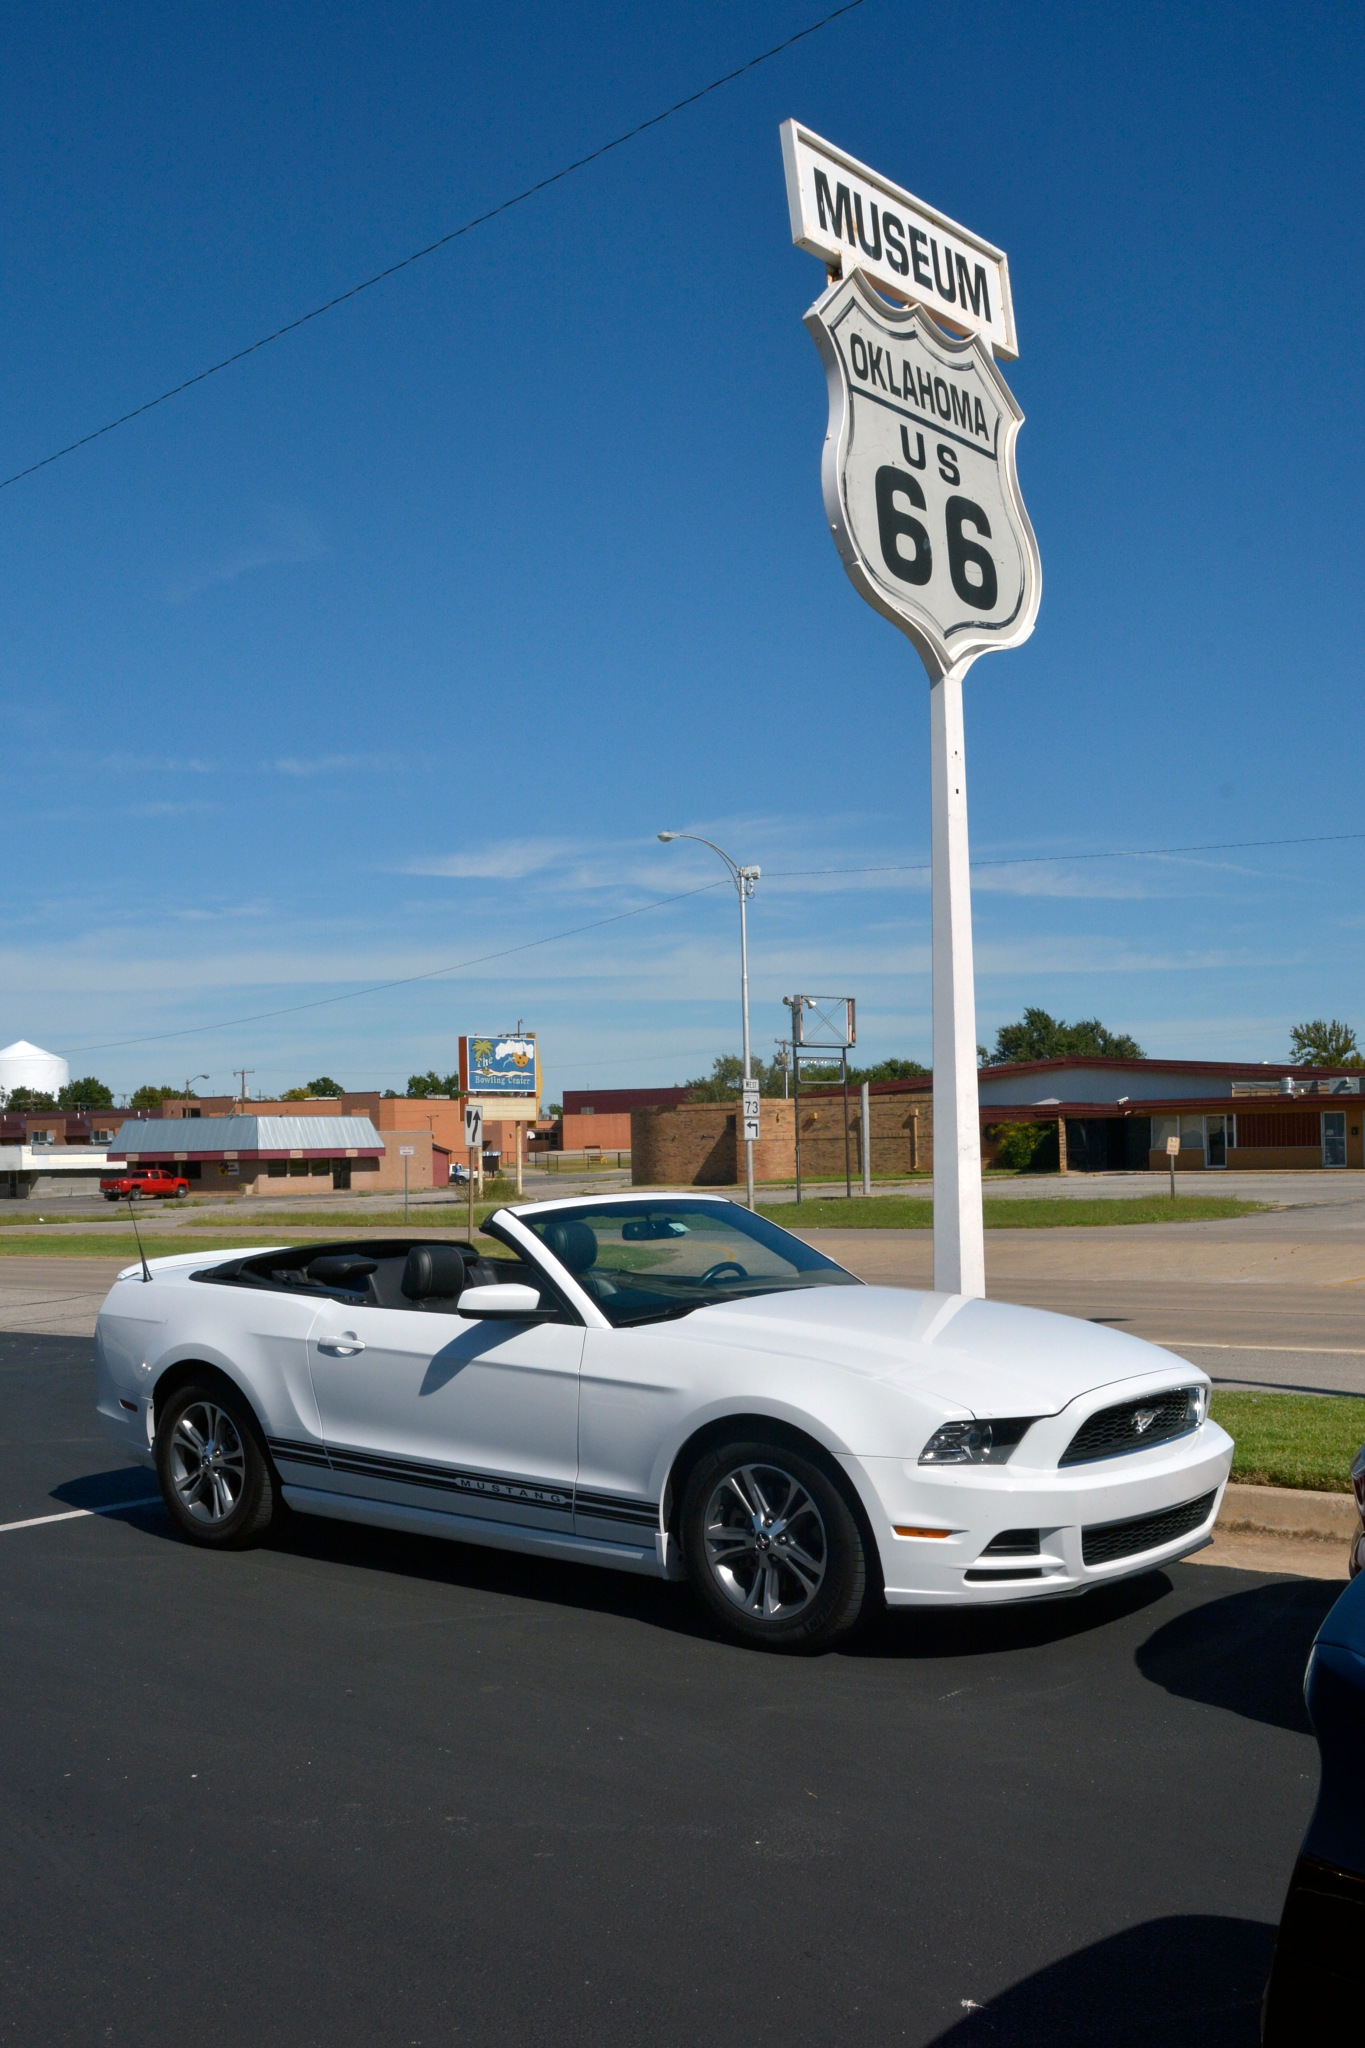 Route 66 Museum by dhphoto